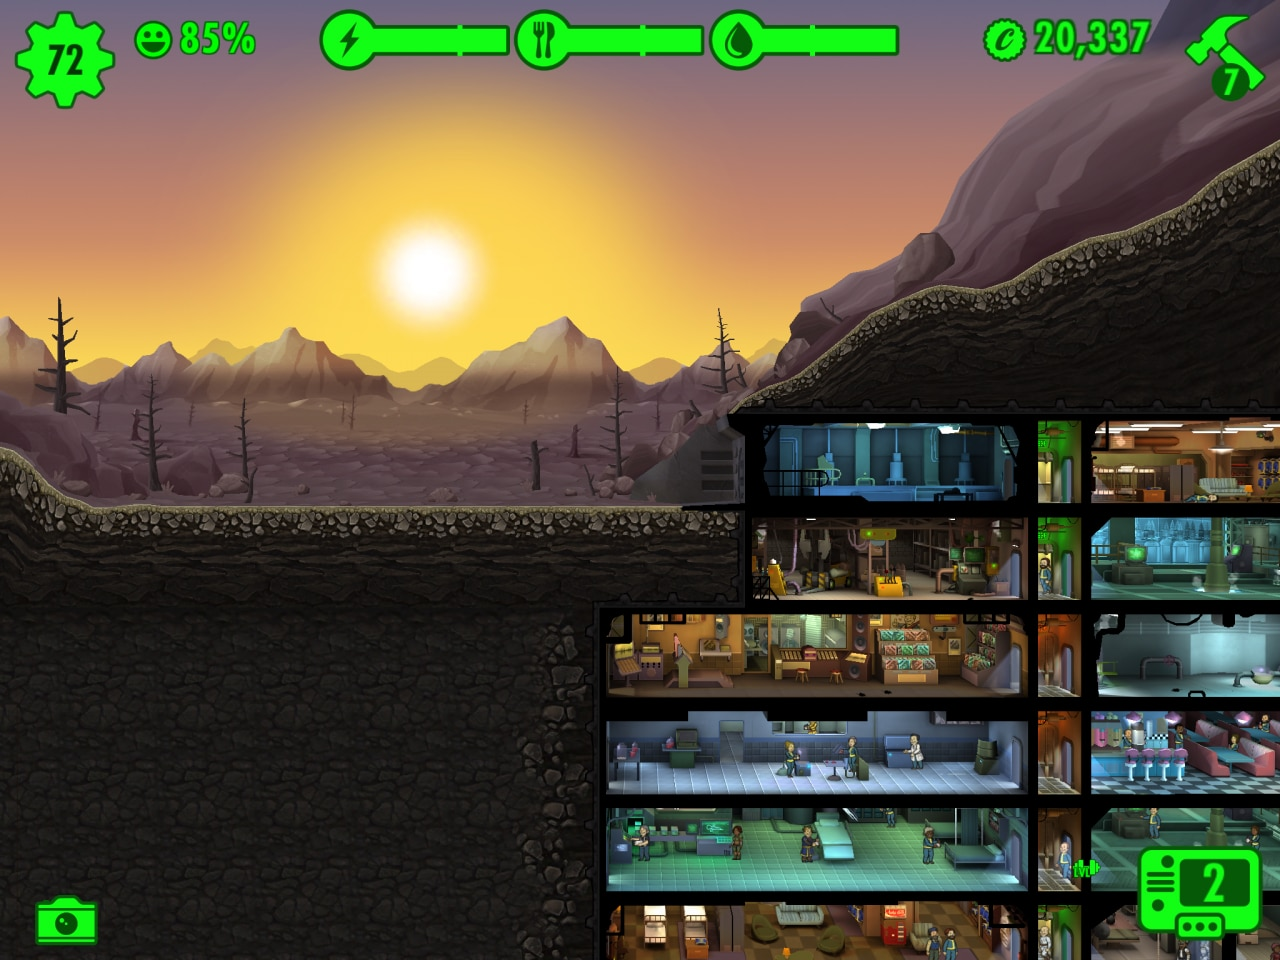 Fallout Shelter update marzo 2016 - 2